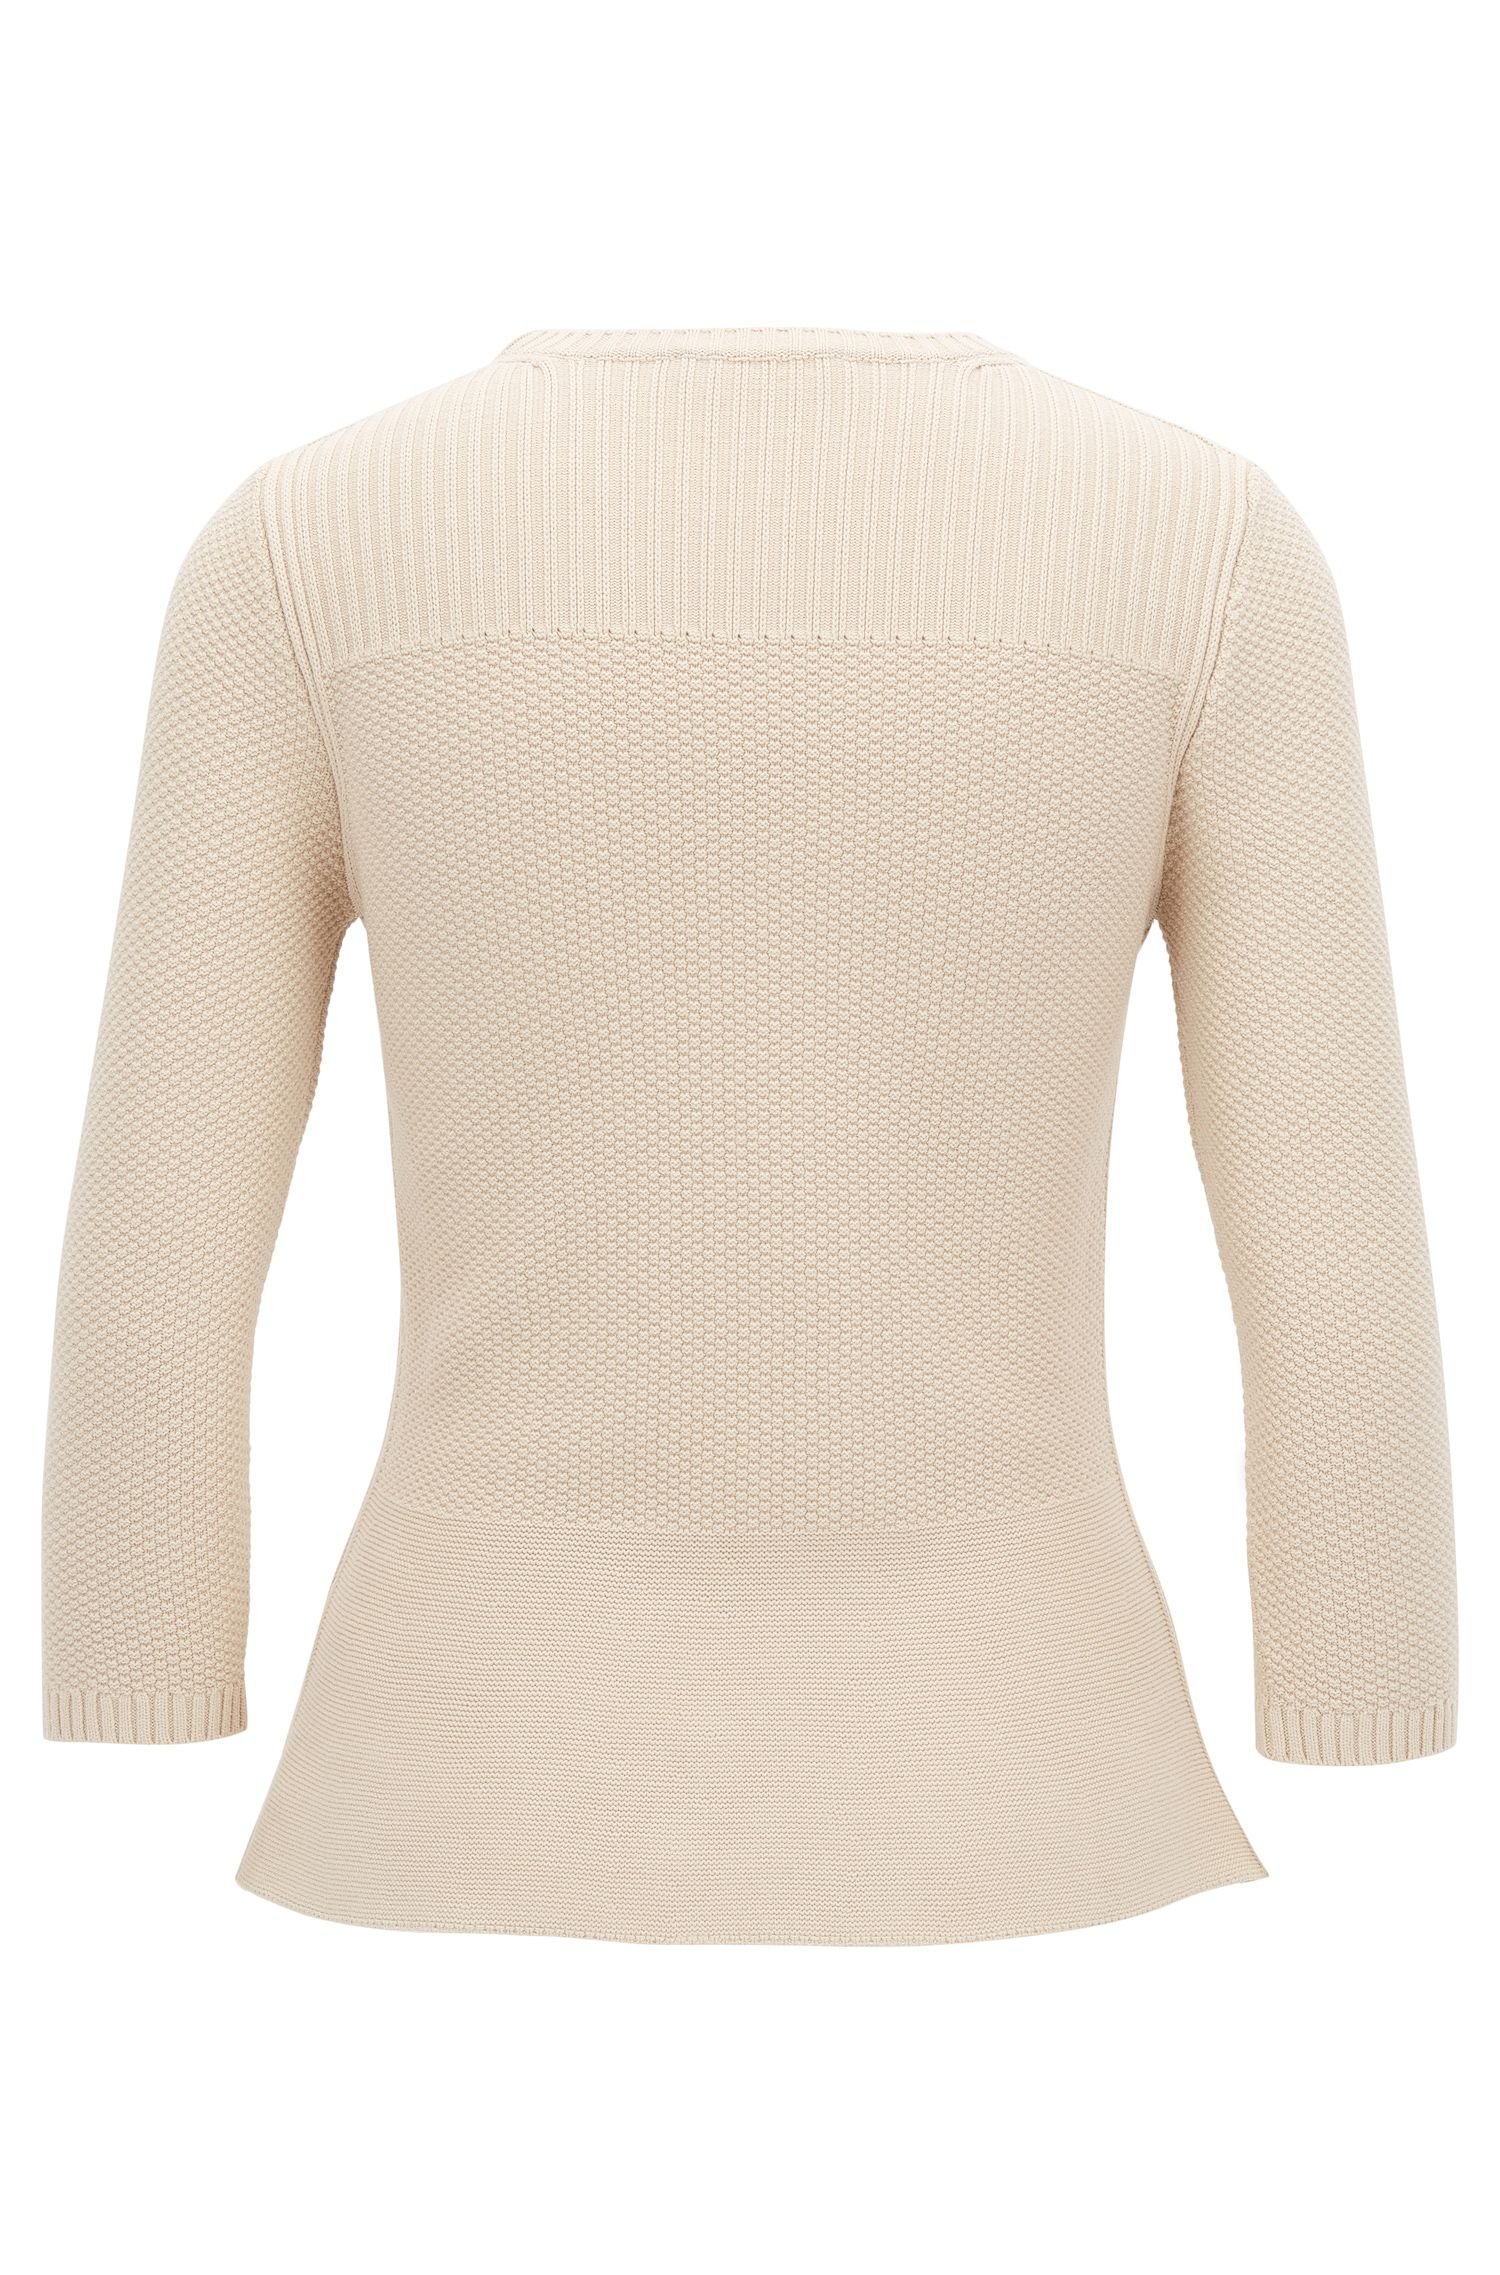 Peplum sweater with three-quarter-length sleeves